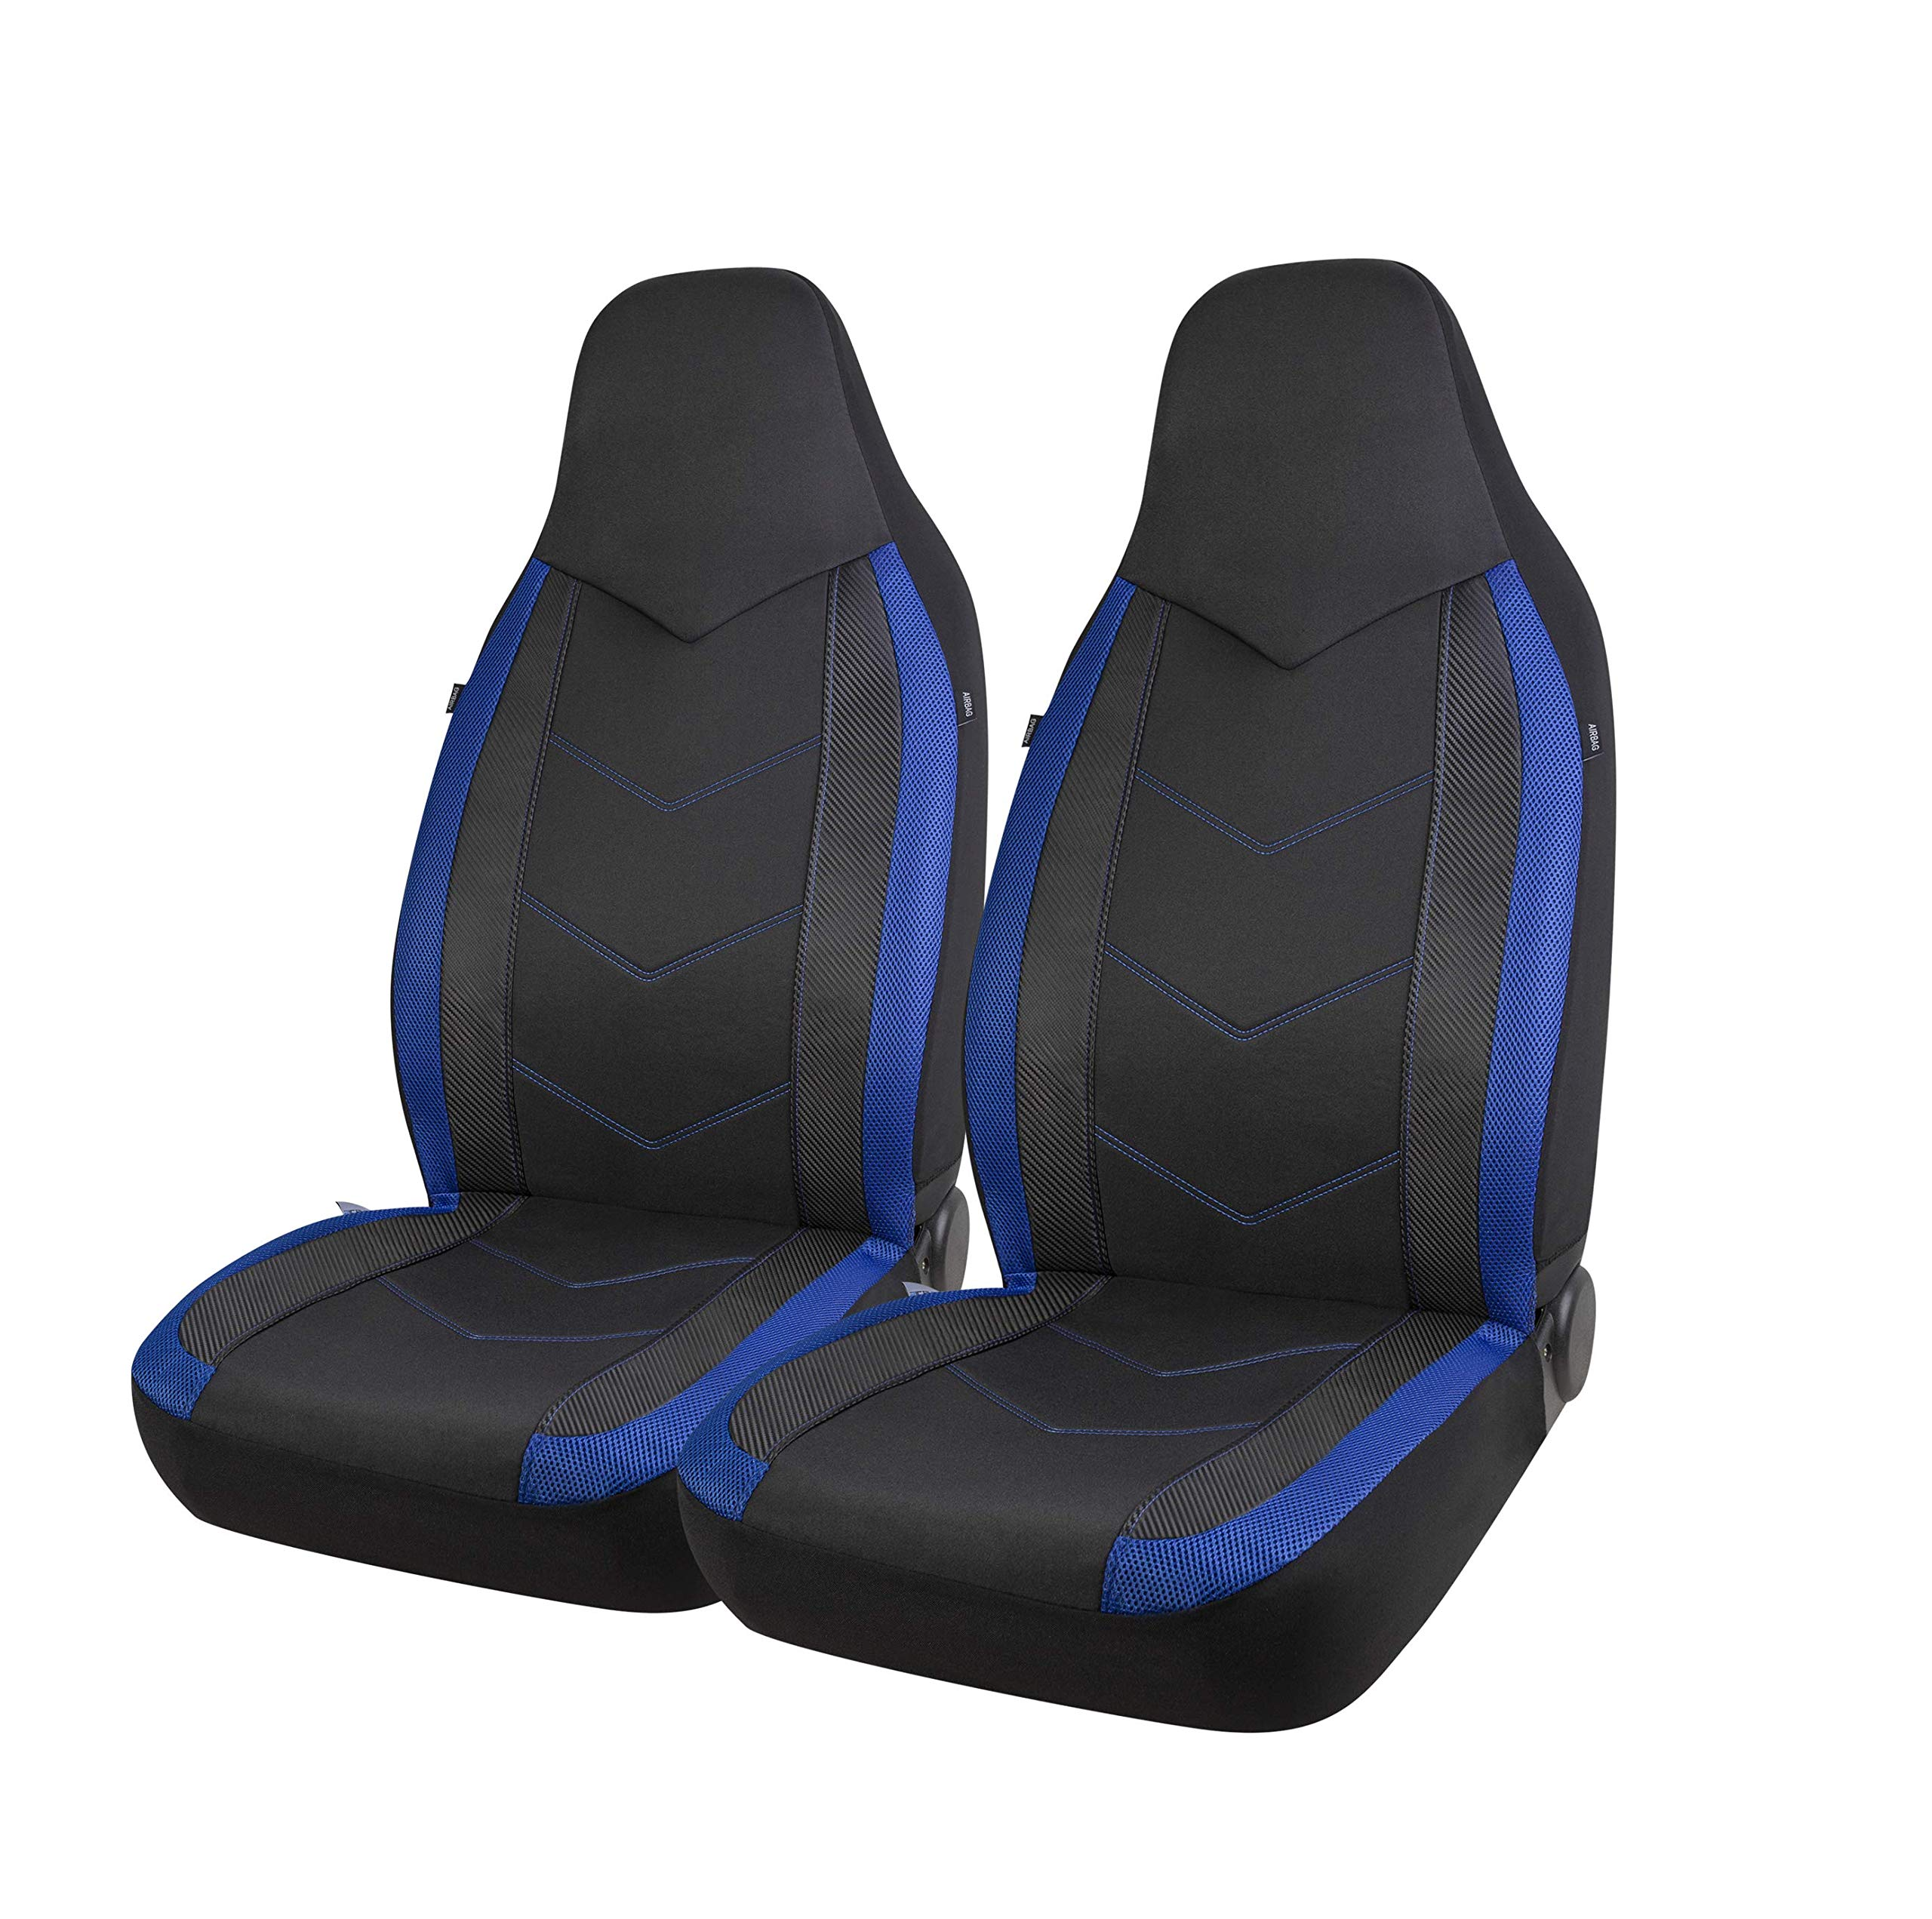 Blue Universal Fit PIC AUTO Low Back Car Seat Covers Sports Carbon Fiber Mesh Design Airbag Compatible